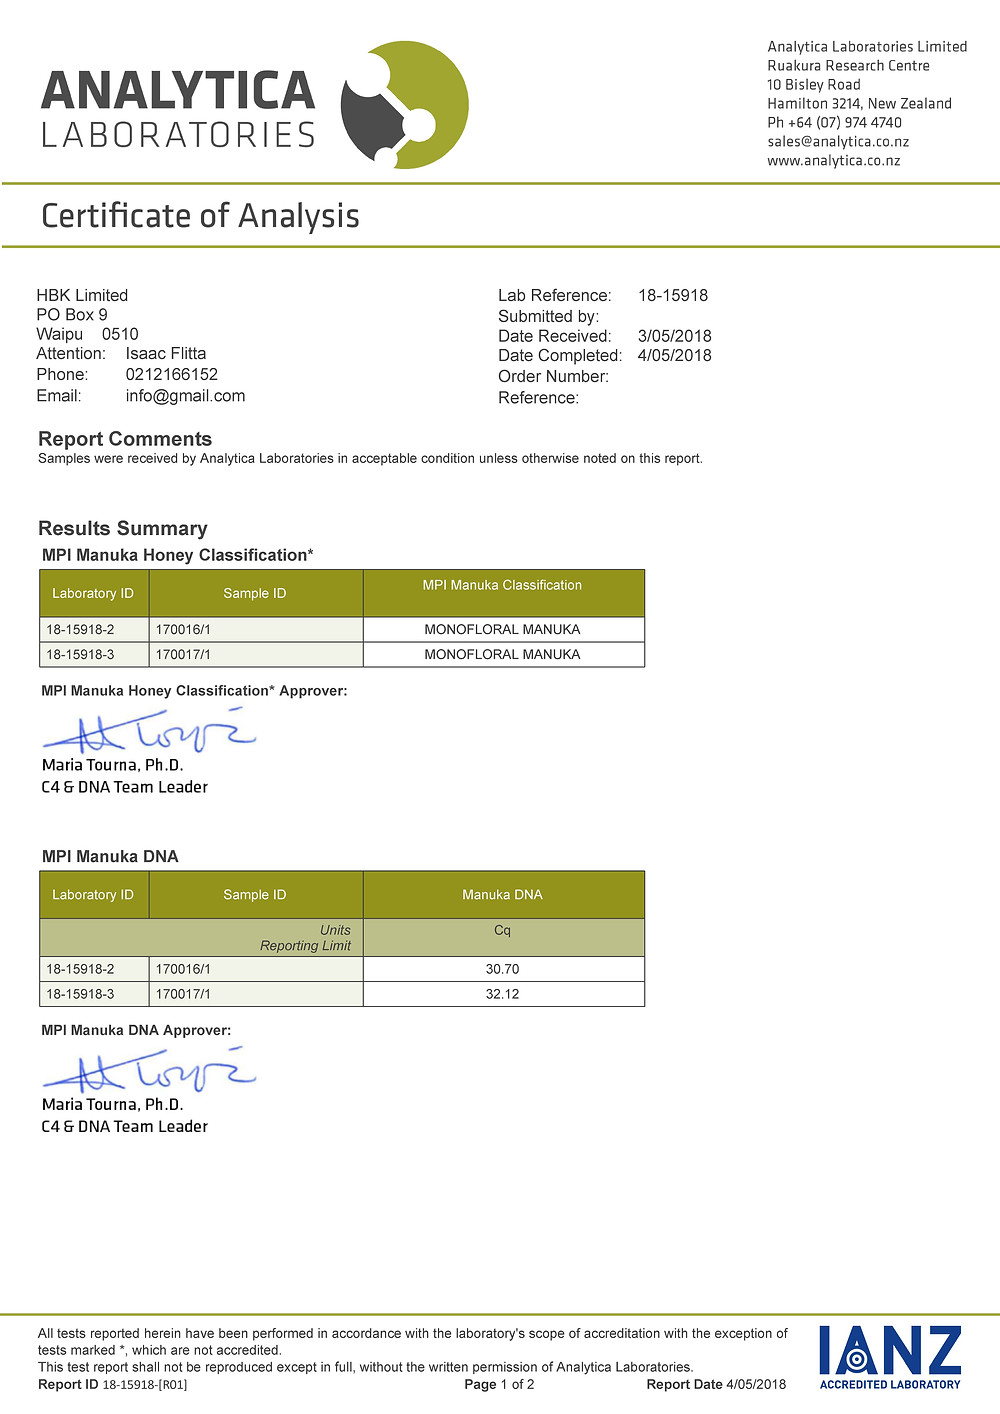 Test results for Manuka HOney classification